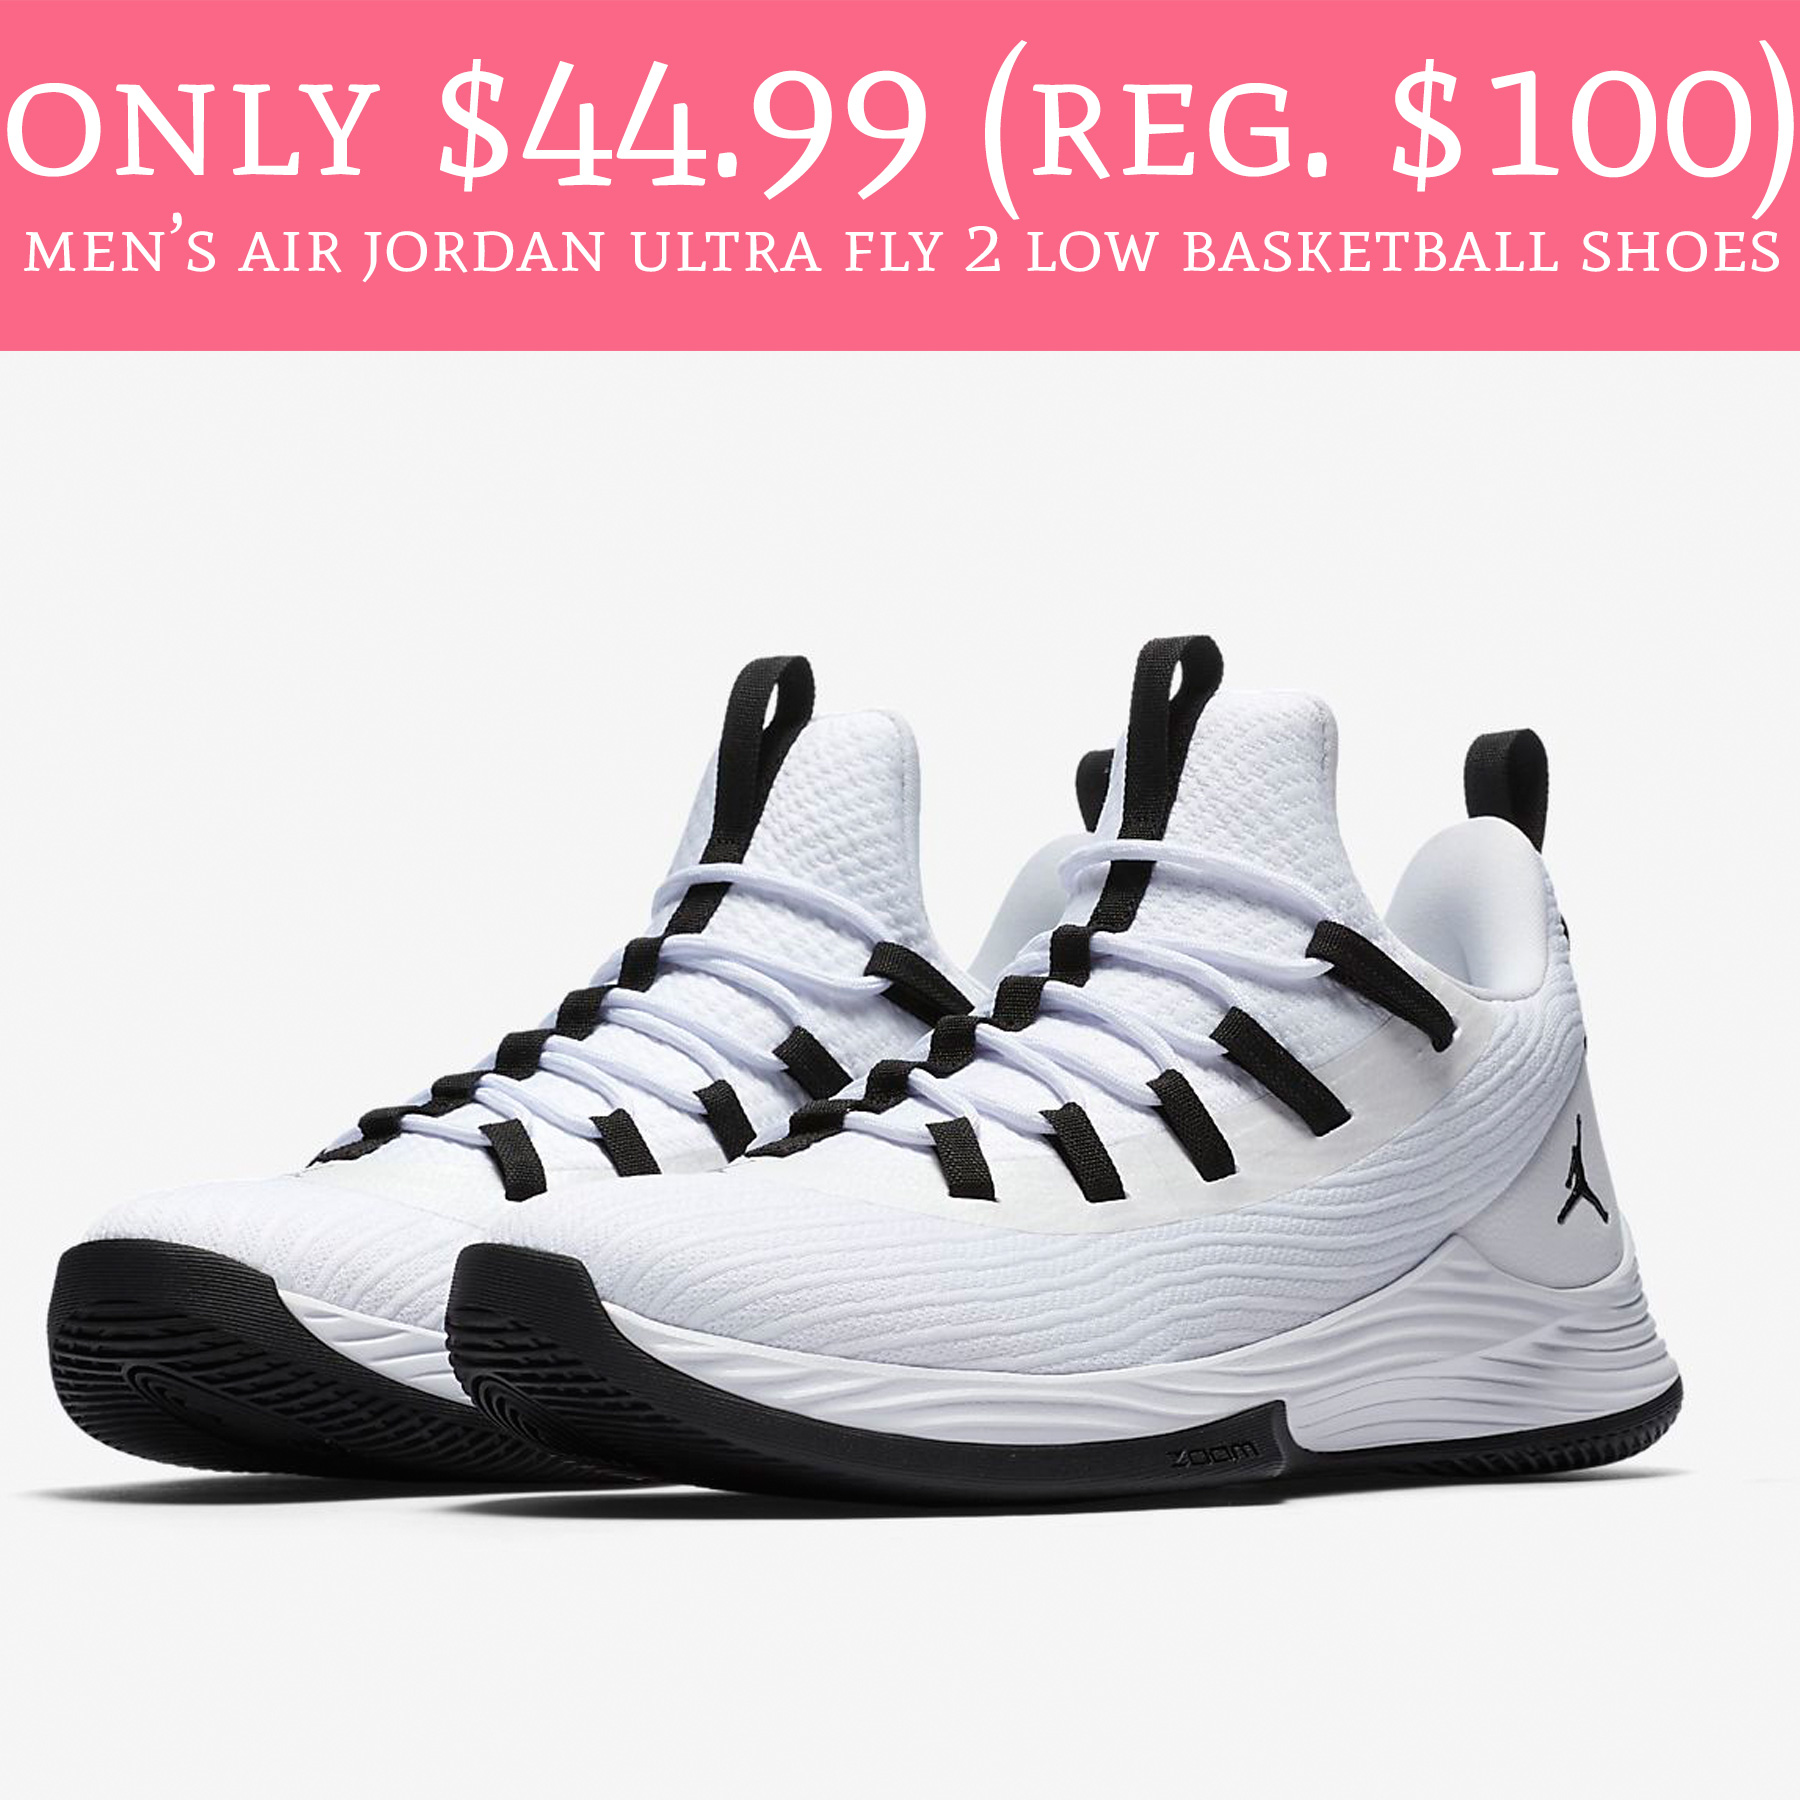 4f5a58ce868b  44.99 (Reg.  100) Men s Air Jordan Ultra Fly 2 Low Basketball Shoes ...